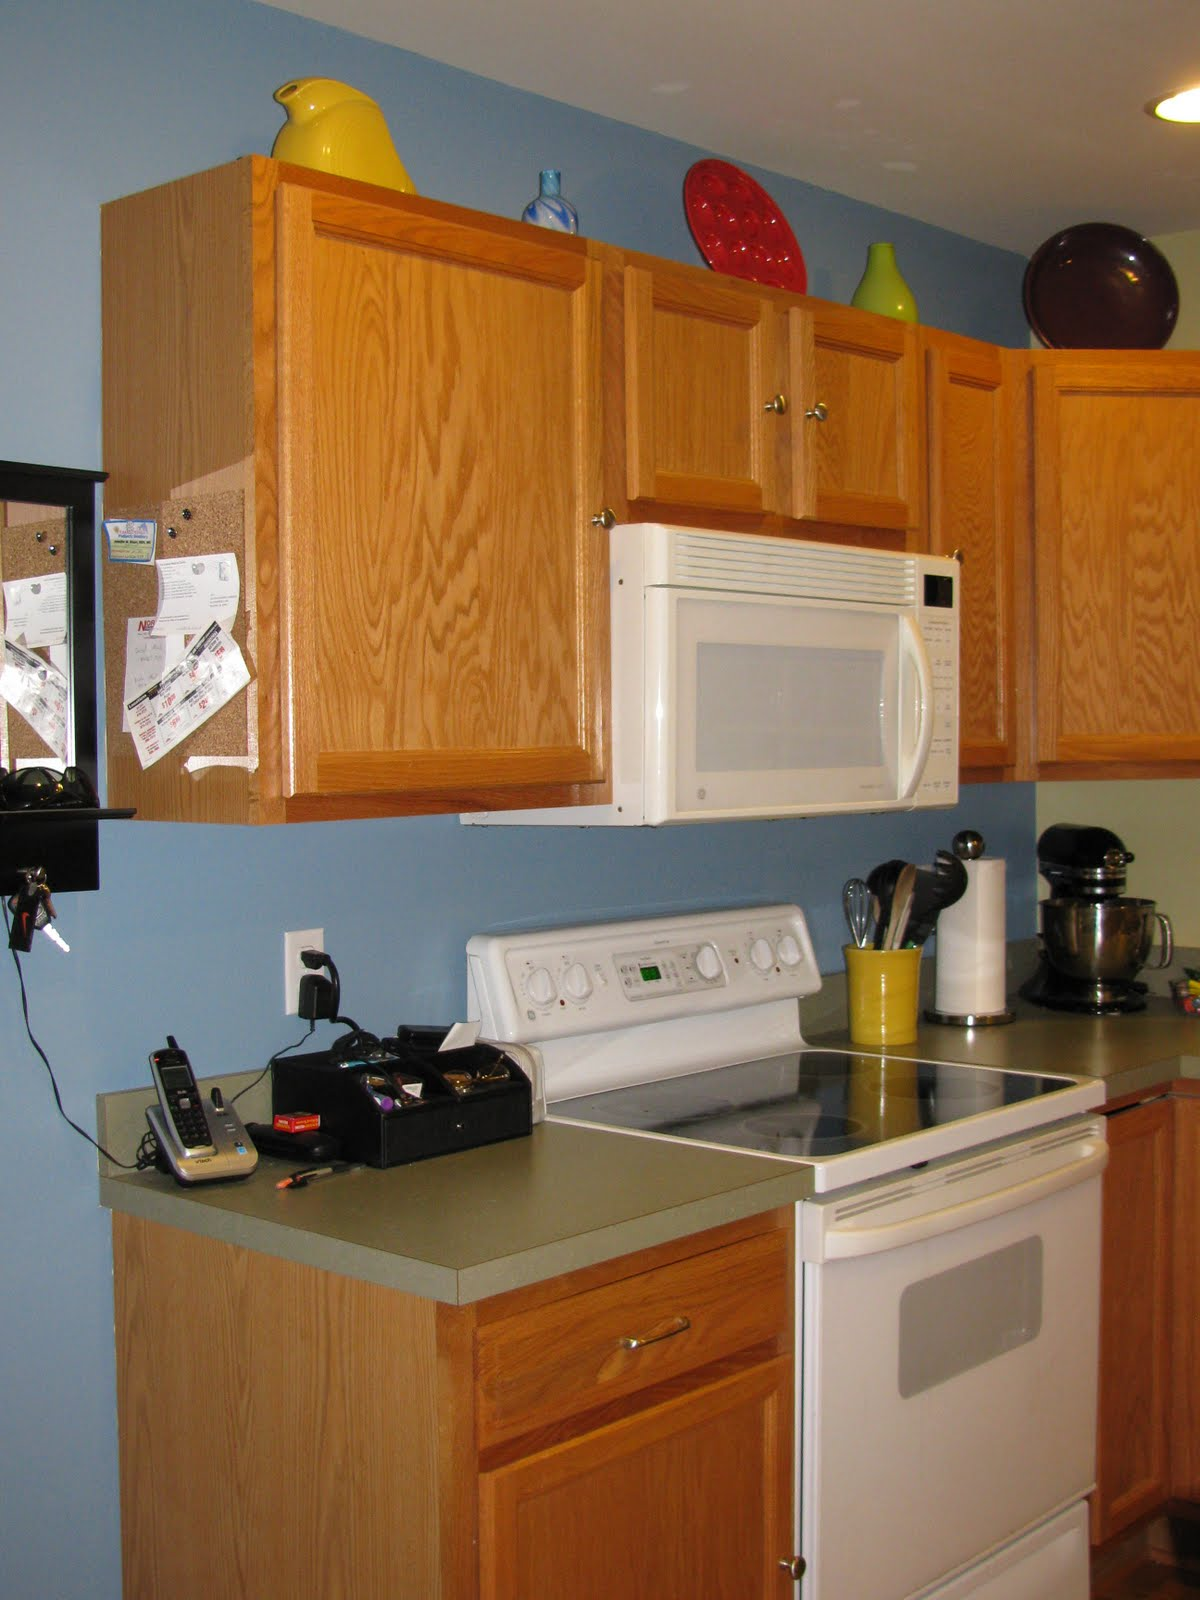 Coolest Kitchen Cabinets Ever